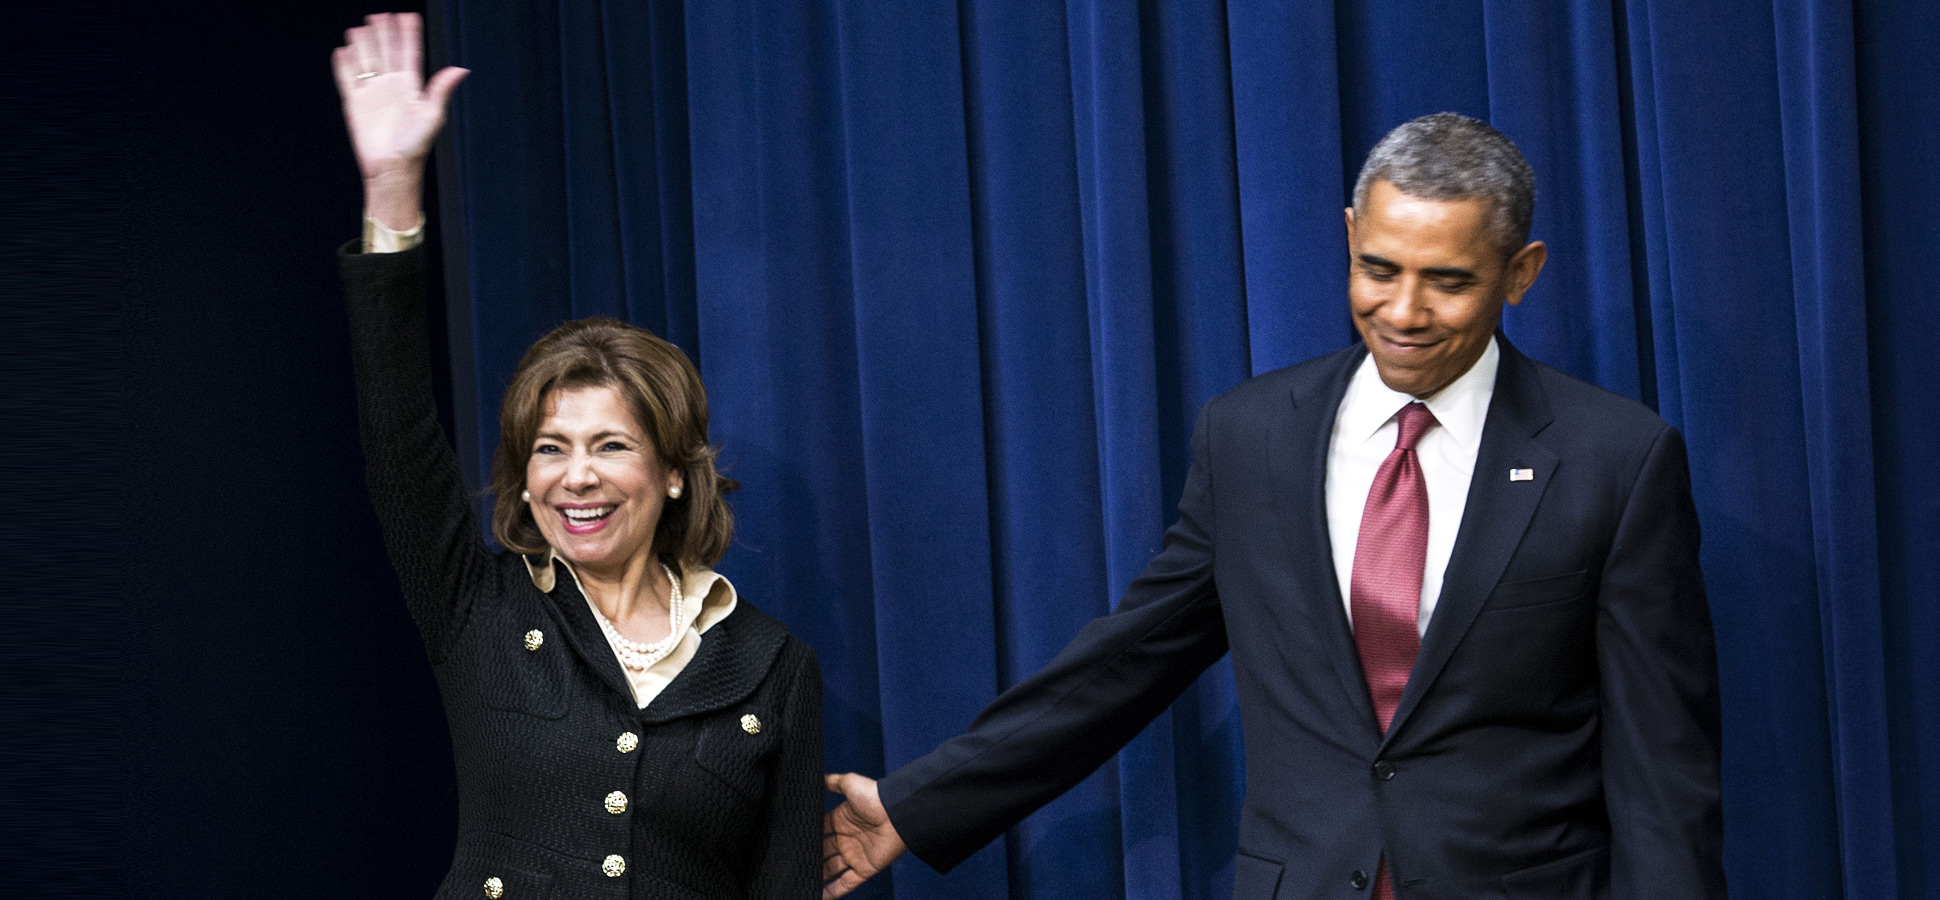 Obama's Pick for SBA Chief Would Be an Advocate for Underdogs